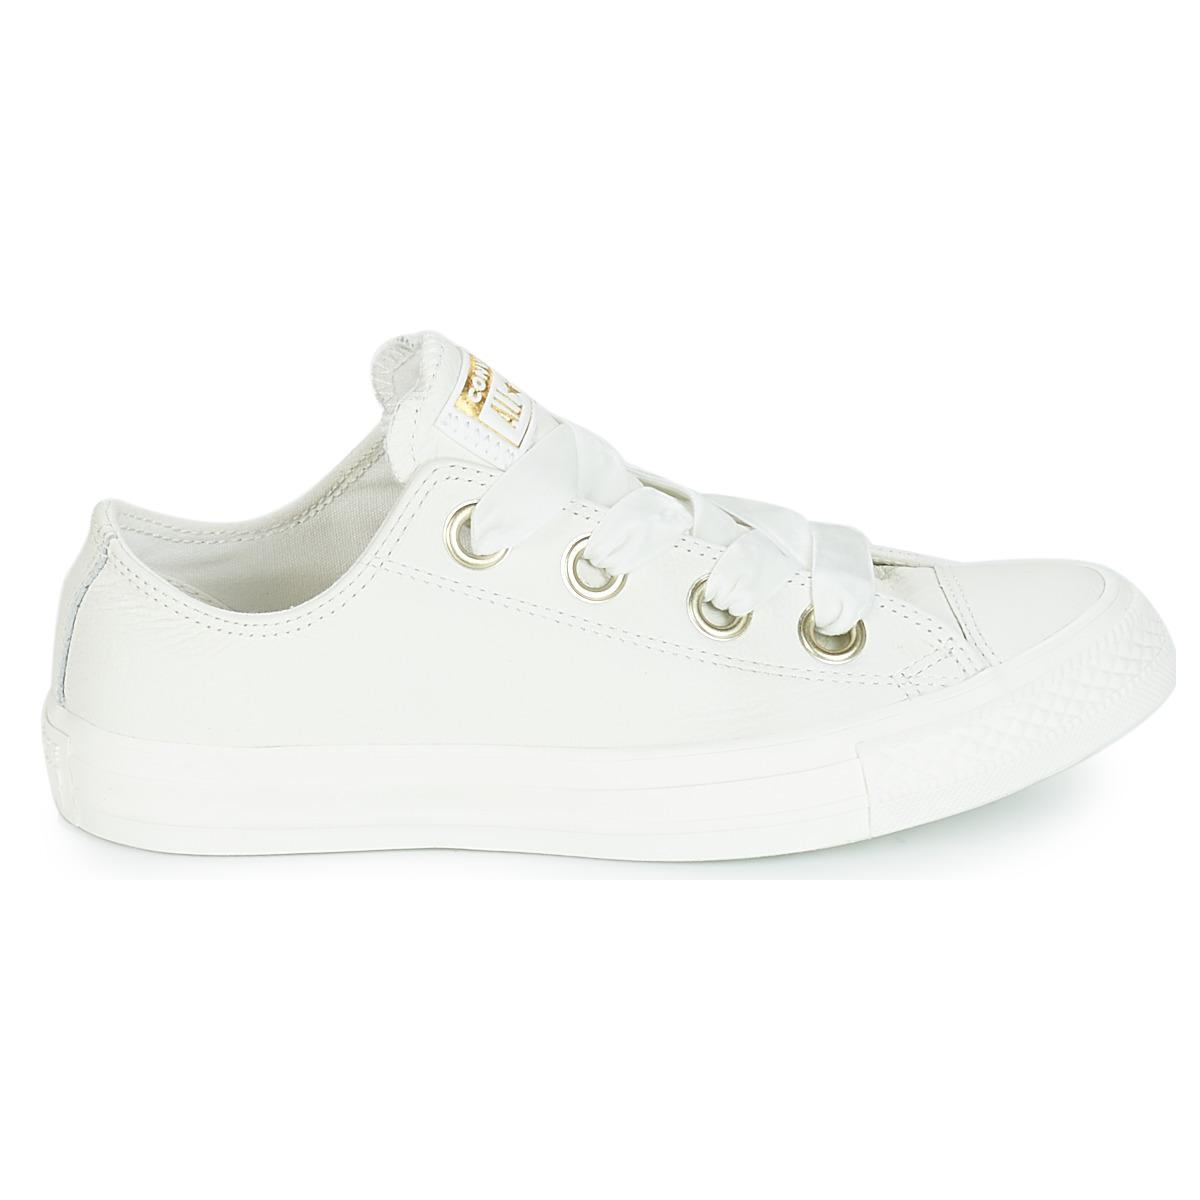 59d34ce71ff7 Converse All Star Big Eyelets Ox Women s Shoes (trainers) In White ...